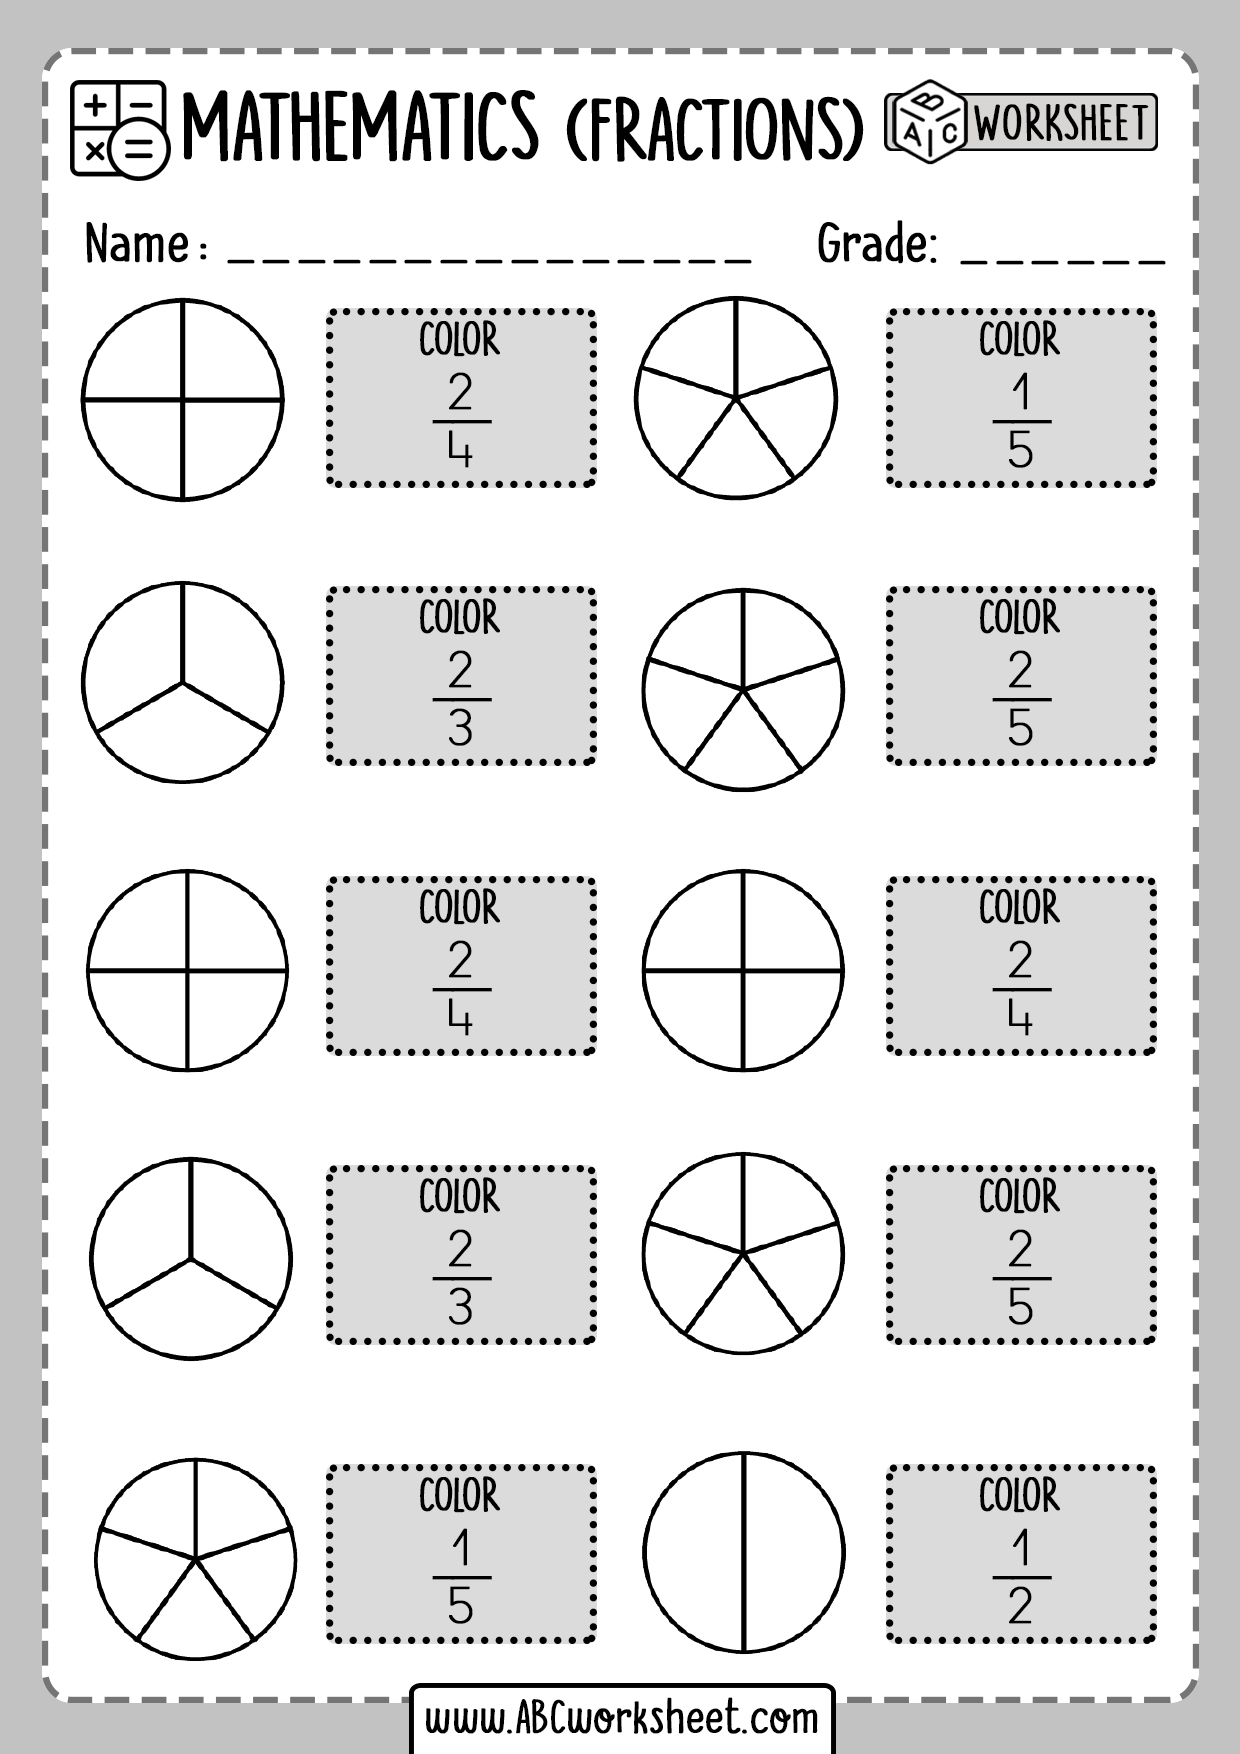 Color Fractions Worksheets